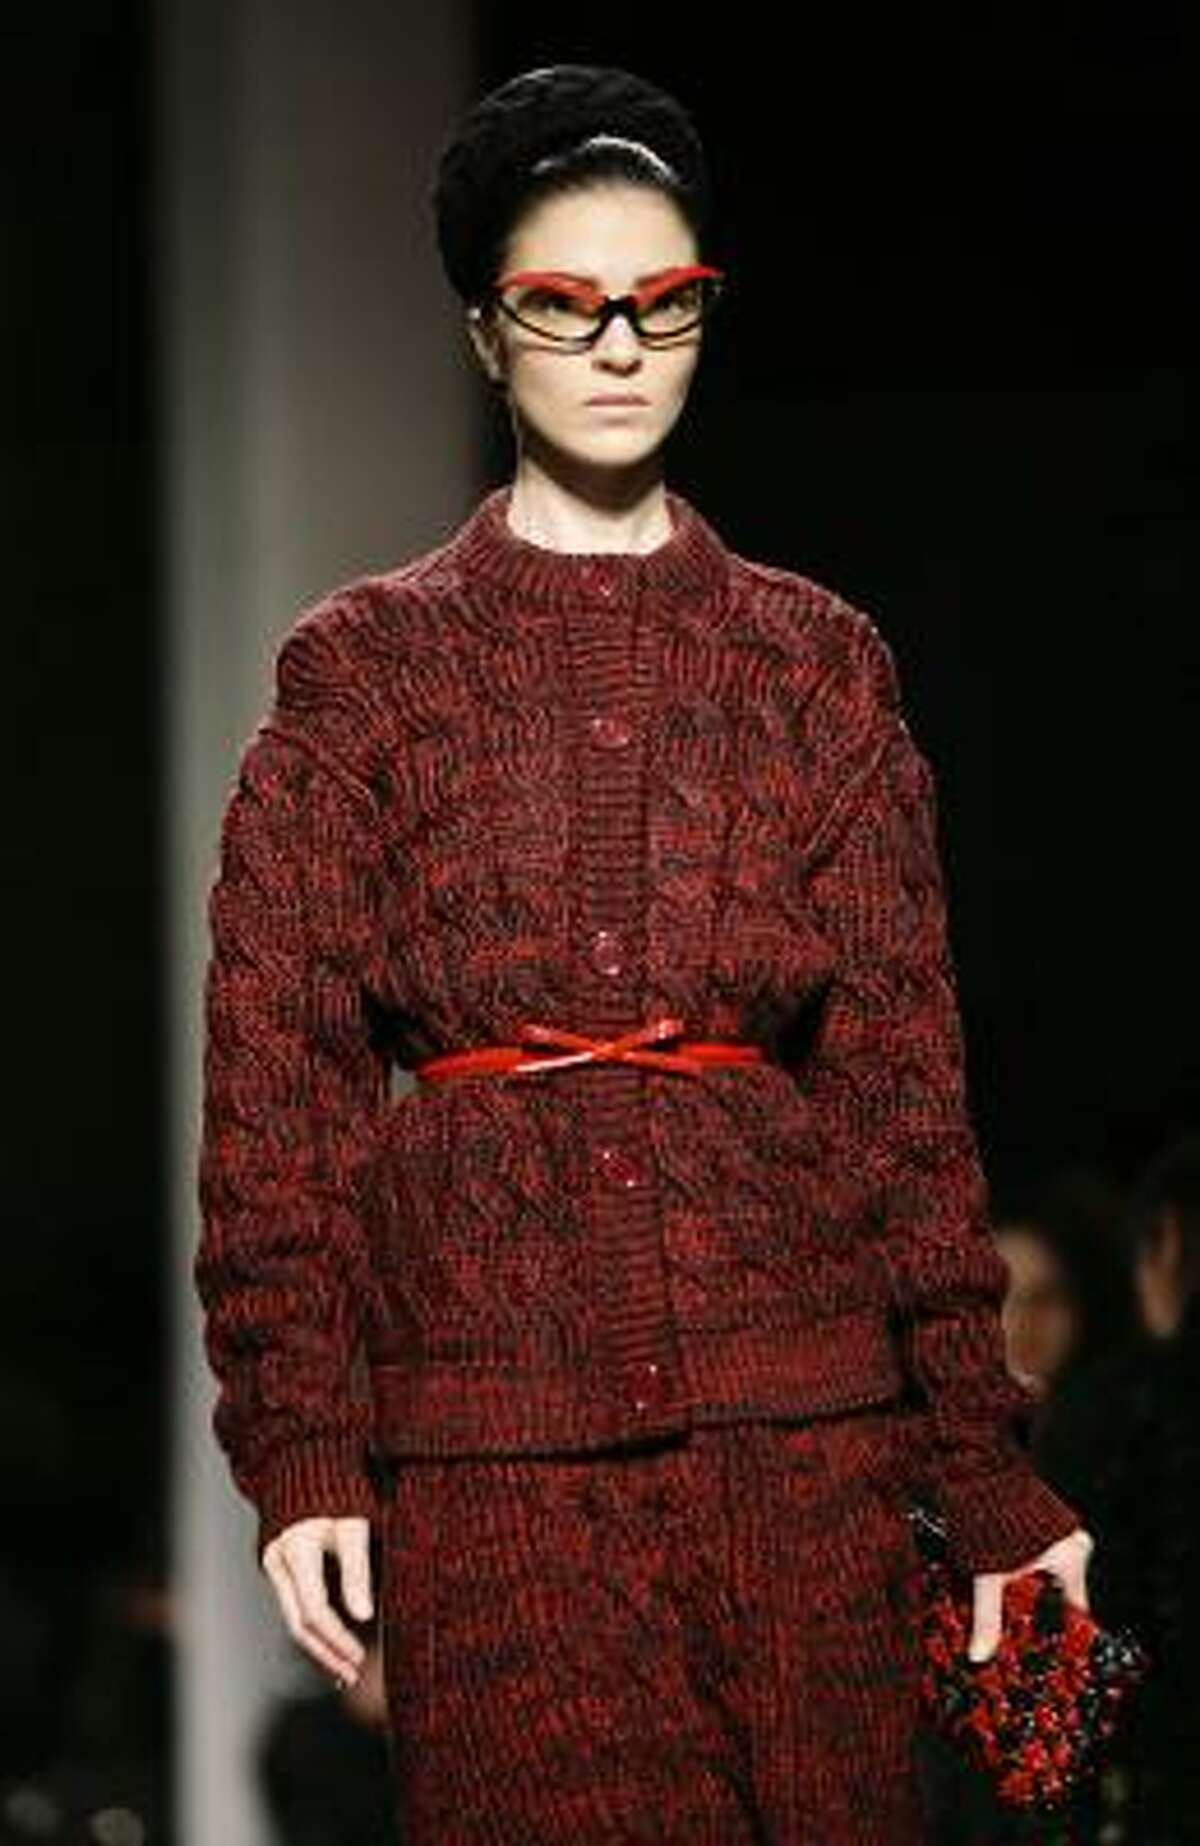 Model Mariacarla Boscono goes all out with eyewear during the Prada fall-winter 2010-11 runway show.